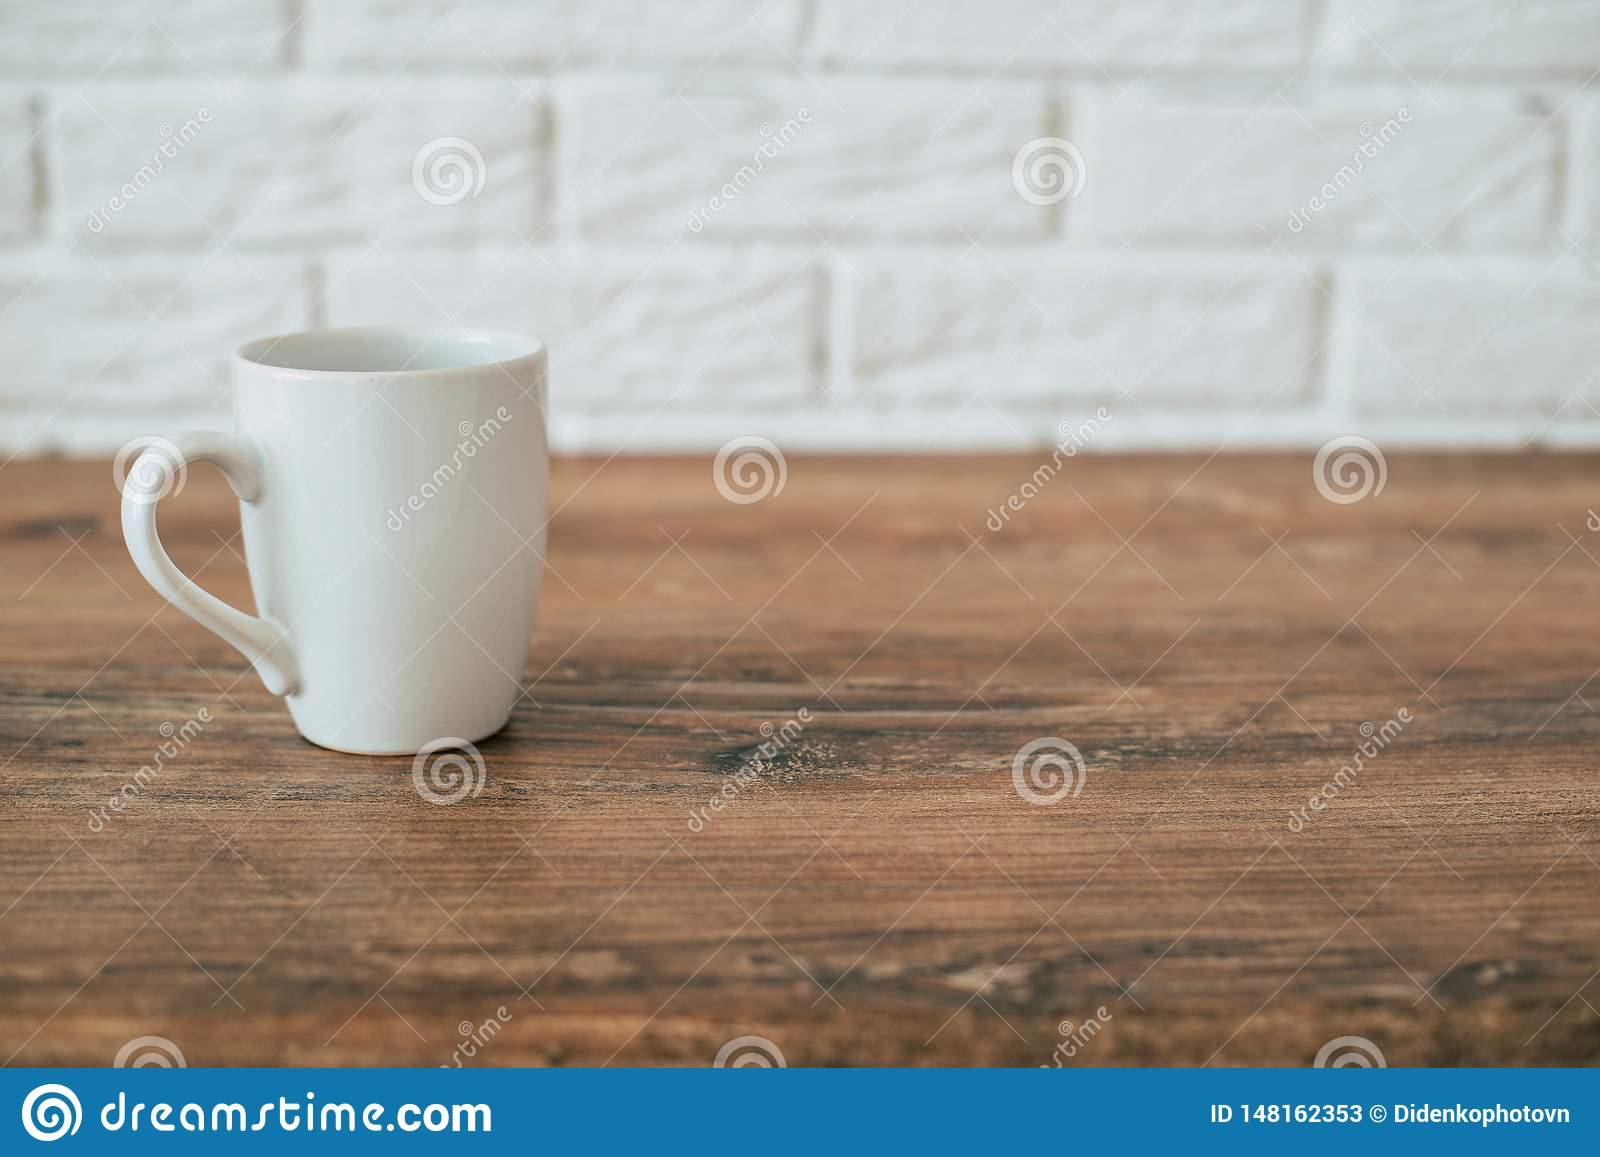 Kitchen. A cup on a wooden chair